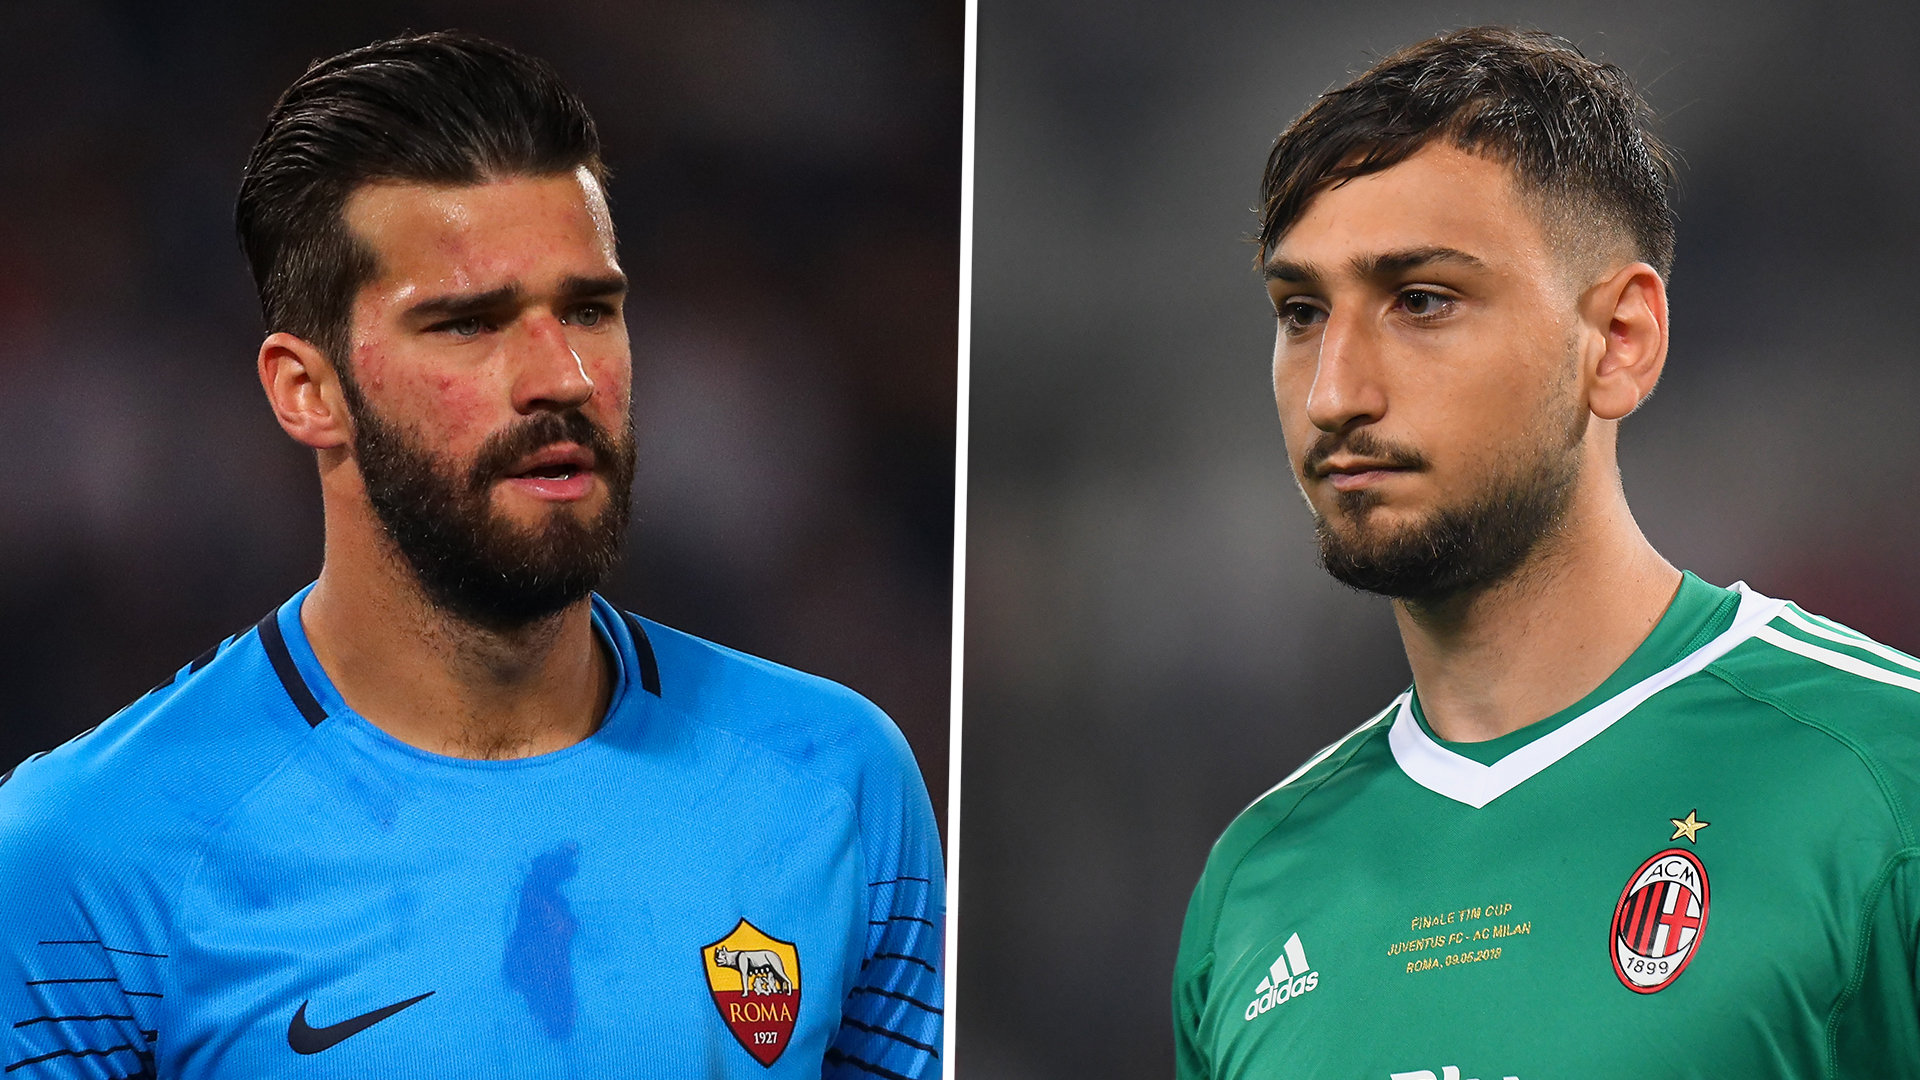 Liverpool open talks with Roma over Alisson deal